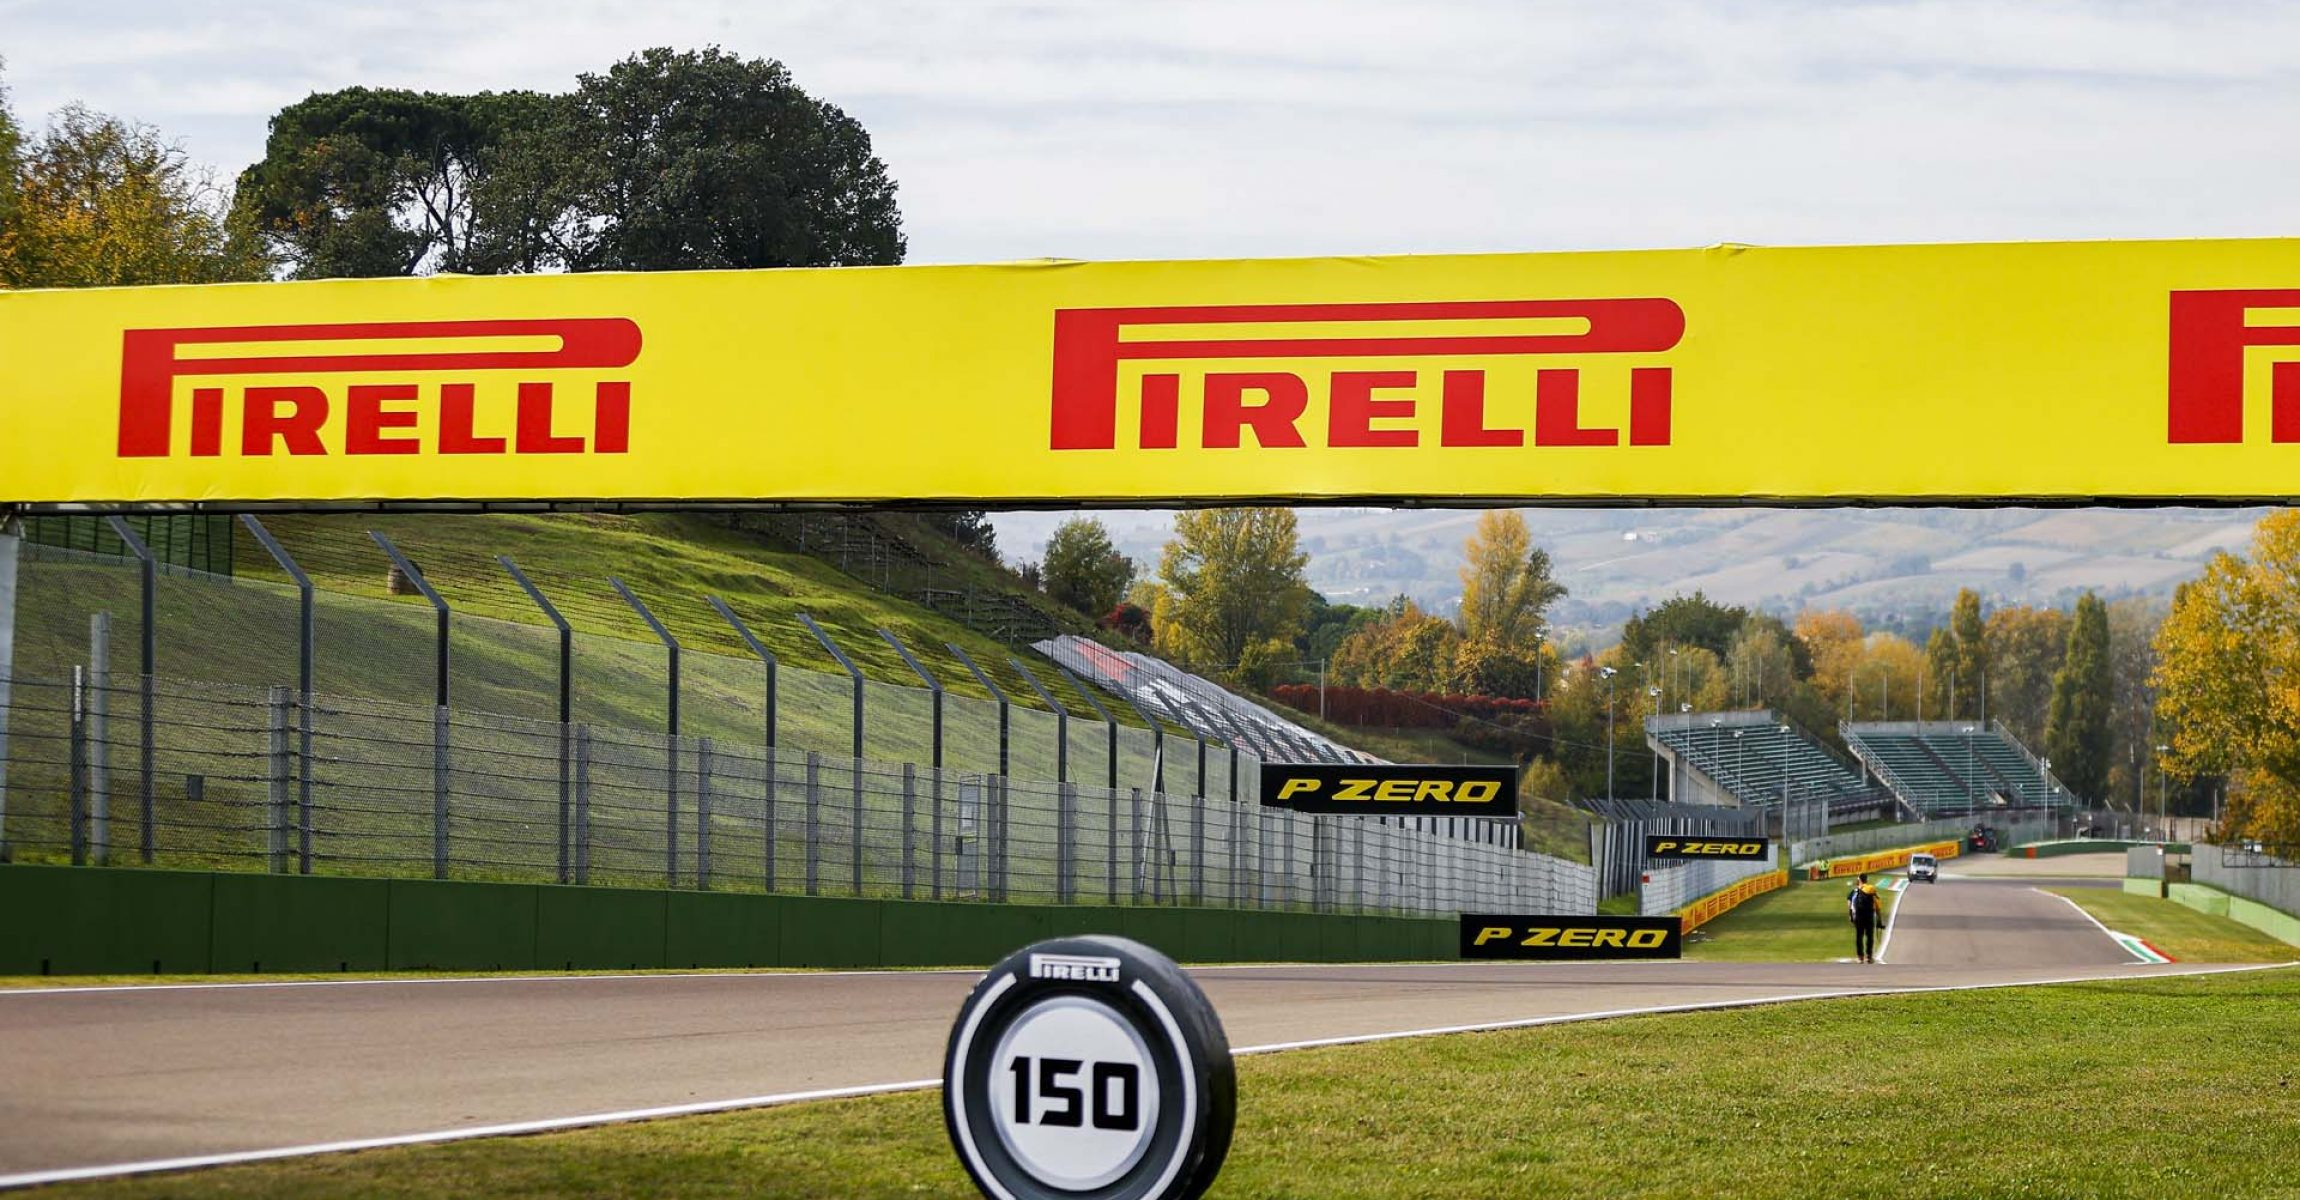 IMOLA, ITALY - OCTOBER 30: Pirelli Sponsor signage and distance markers during the Emilia-Romagna GP at Imola on Friday October 30, 2020, Italy. (Photo by Andy Hone)